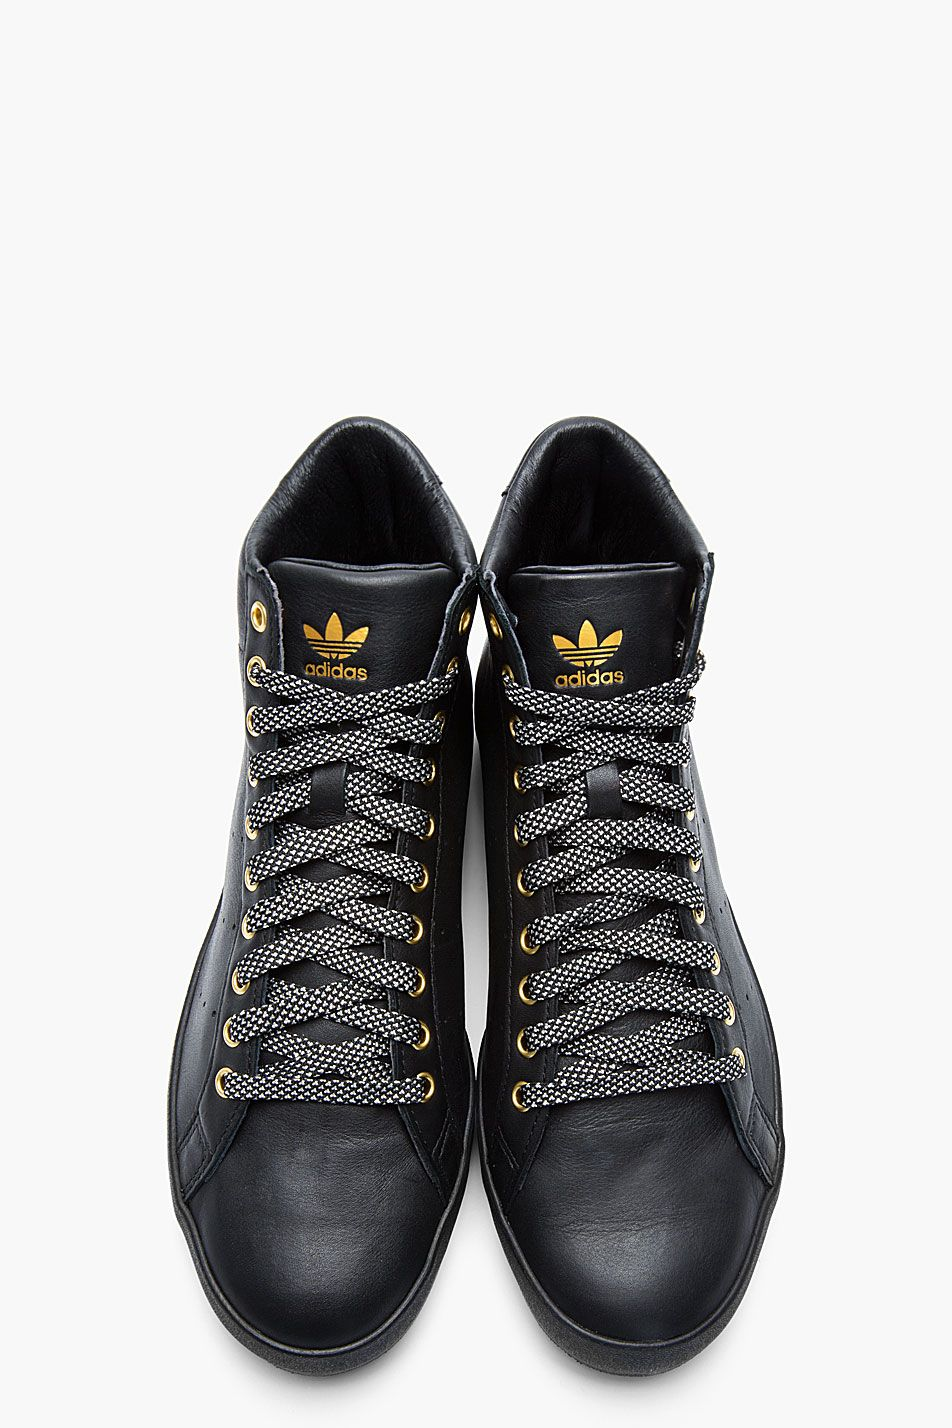 Originals O Adidas Laver cBlack And Leather Rod By Gold 9YbWD2HeEI